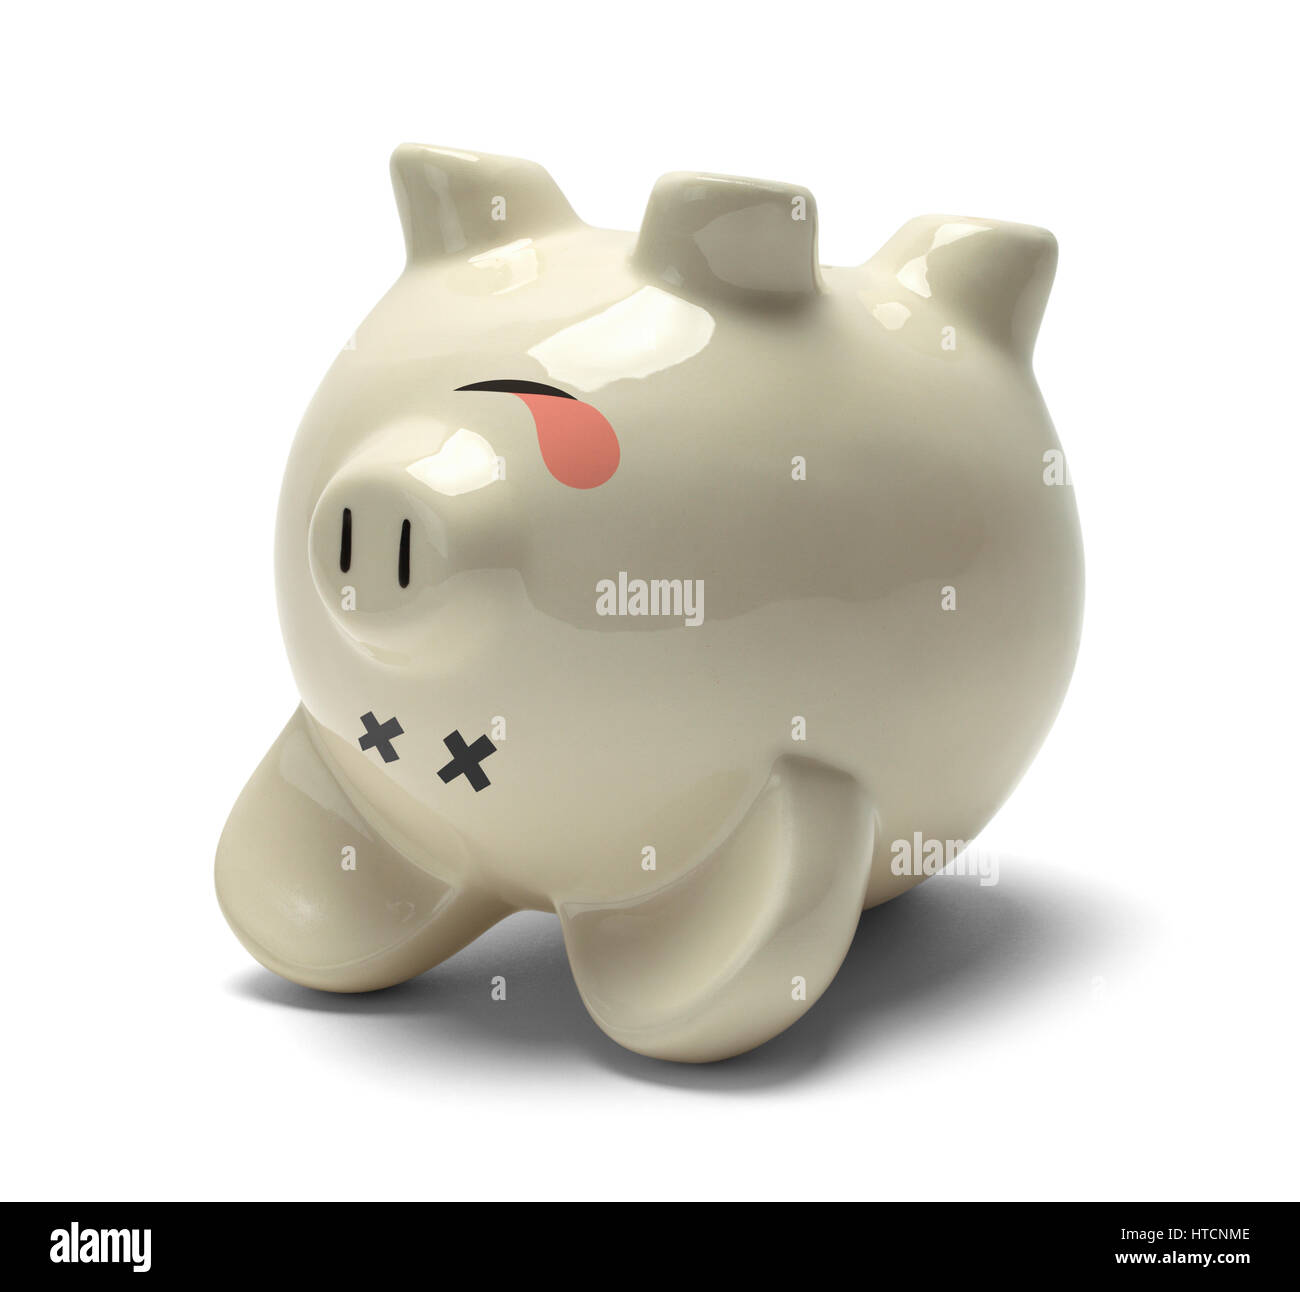 Upside Down Dead Piggy Bank Isolated on White Background. - Stock Image